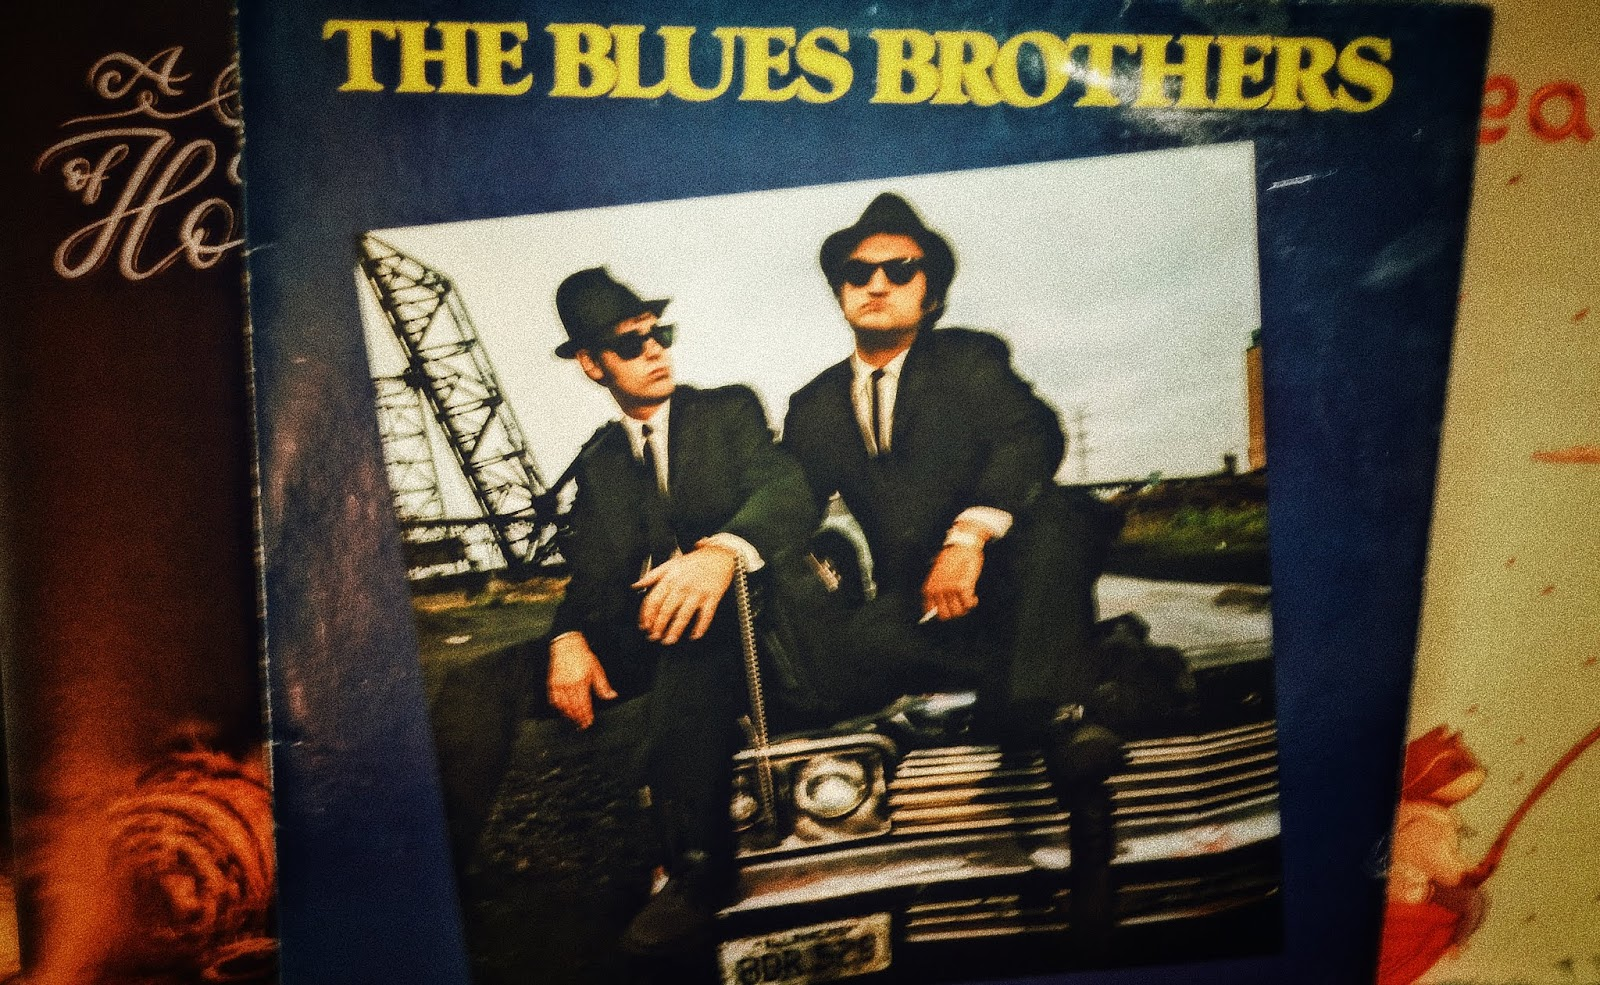 Das Blues Brothers Debüt feiert heute 41. Geburtstag | Briefcase Full of Blues | Full Album Stream